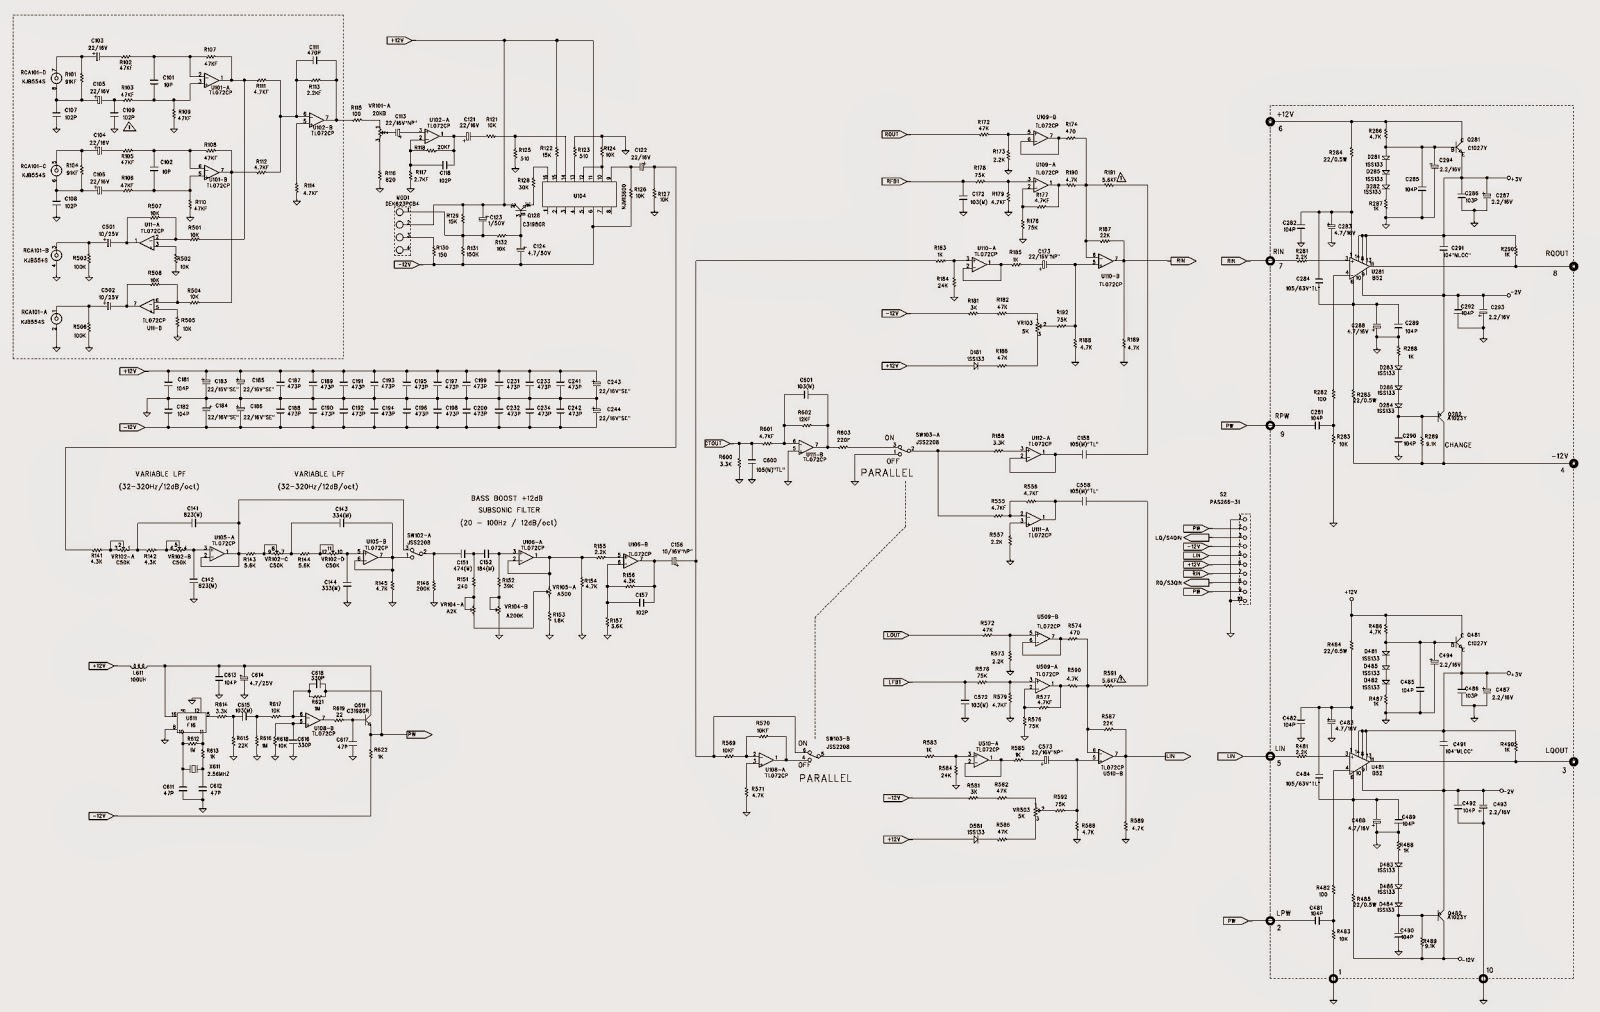 Bridged Mono Wiring Diagram Types Of Network Diagrams In Project Management Jbl Bpx2200 1 2 Channel Power Amplifier Car